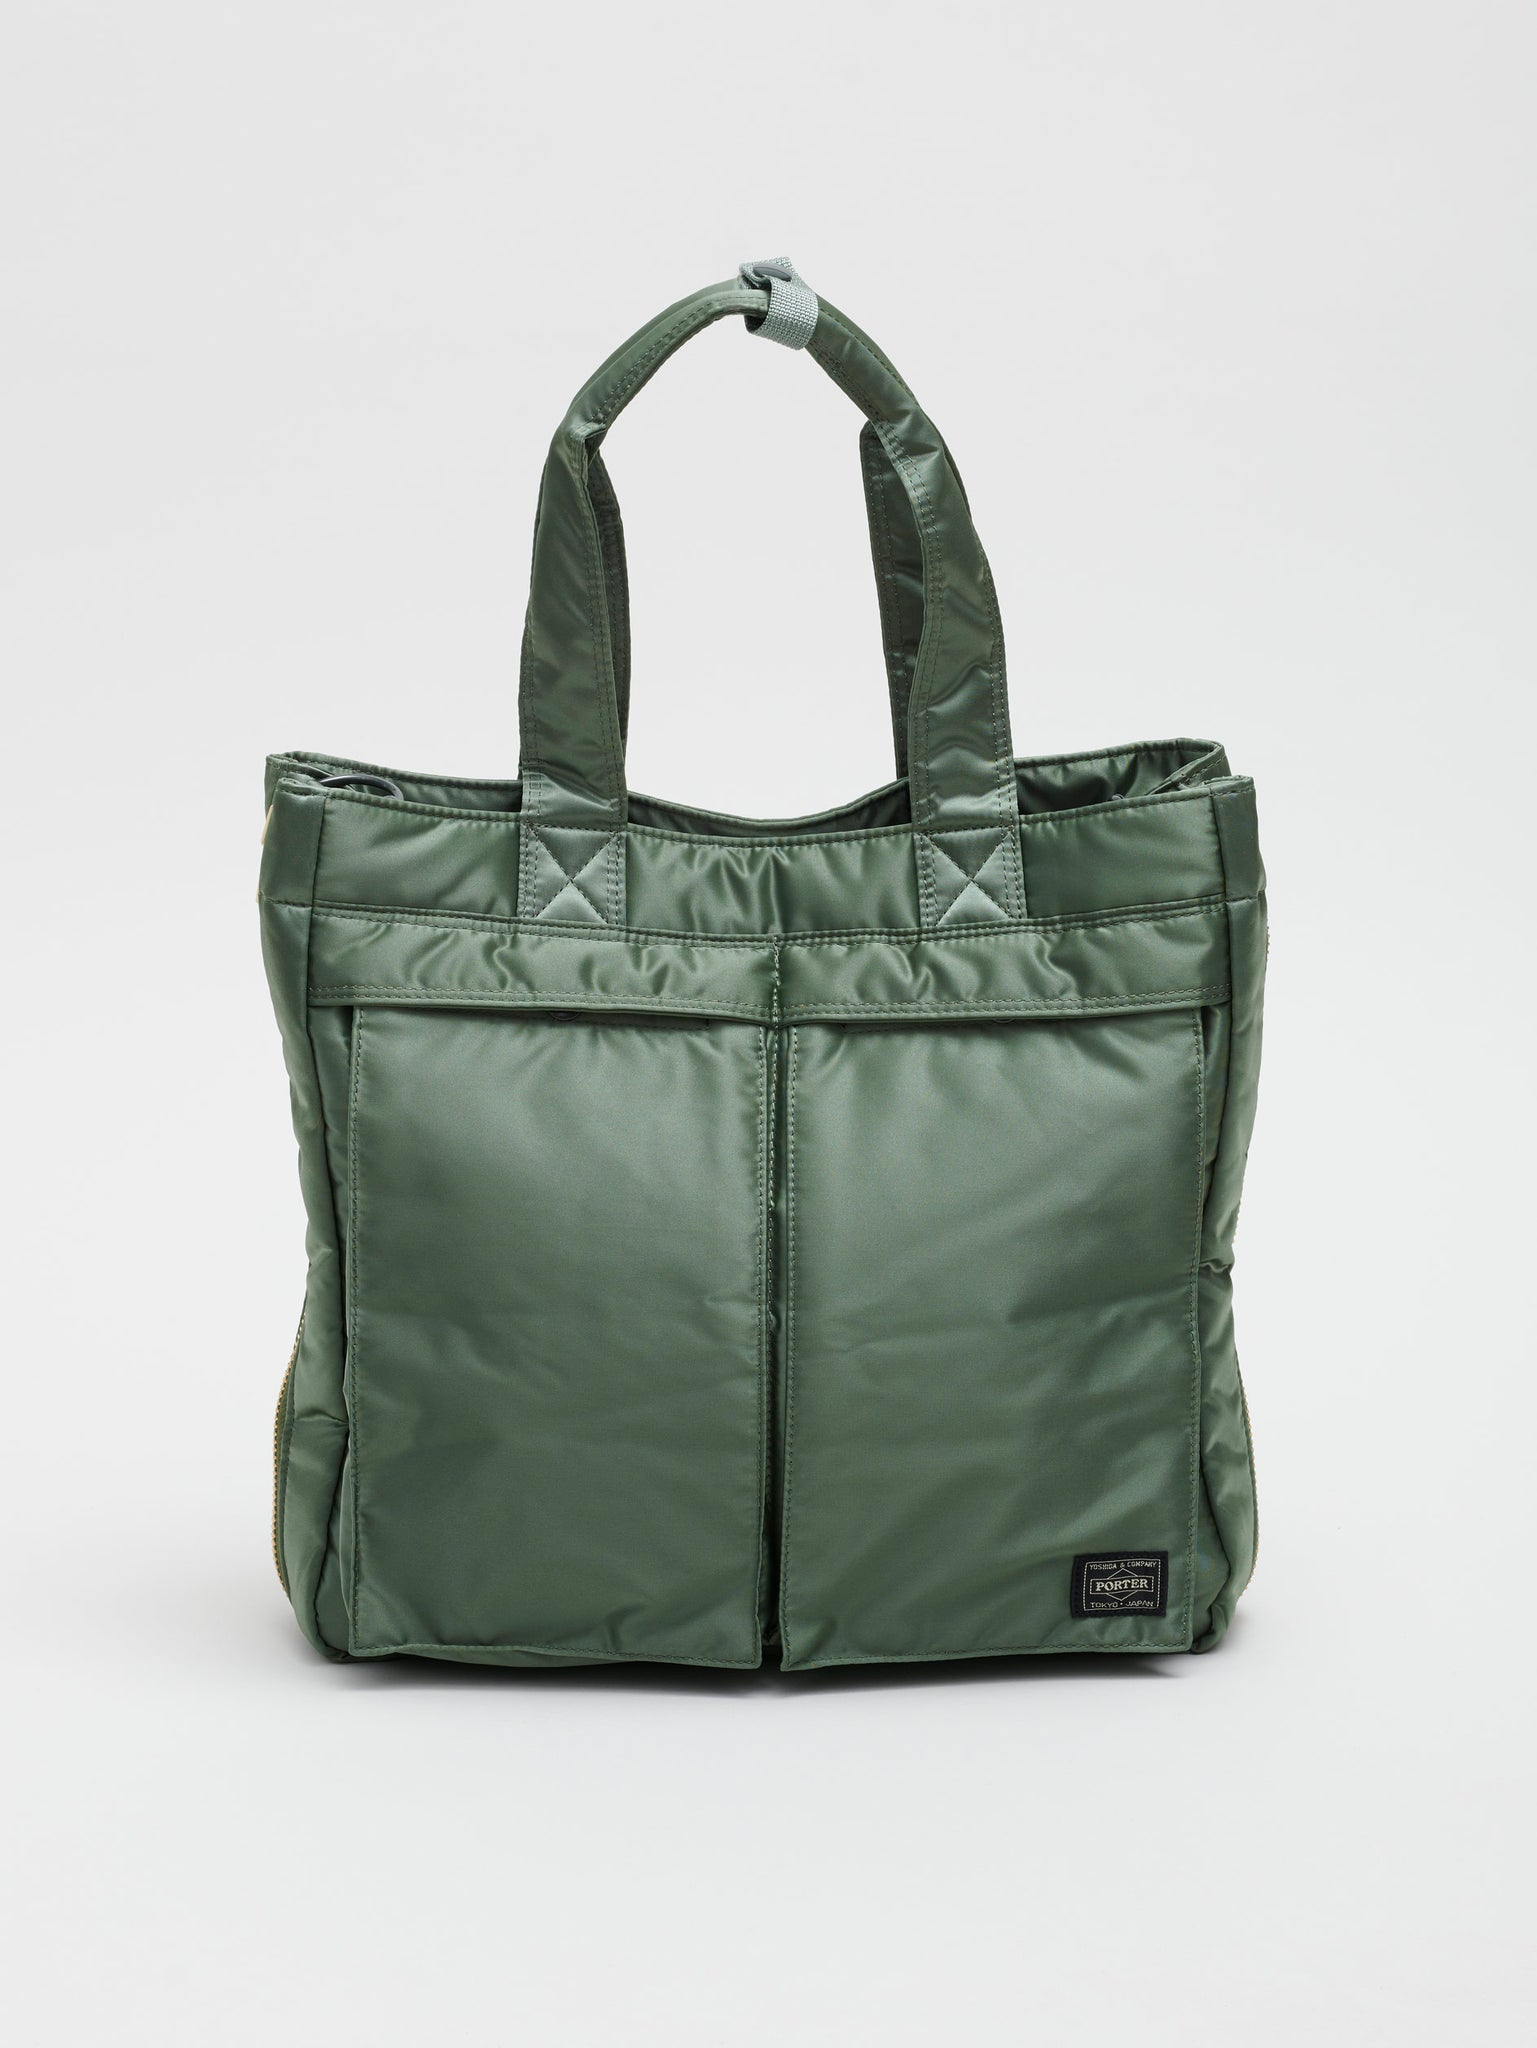 2Way Tanker Tote Bag, Sage Green